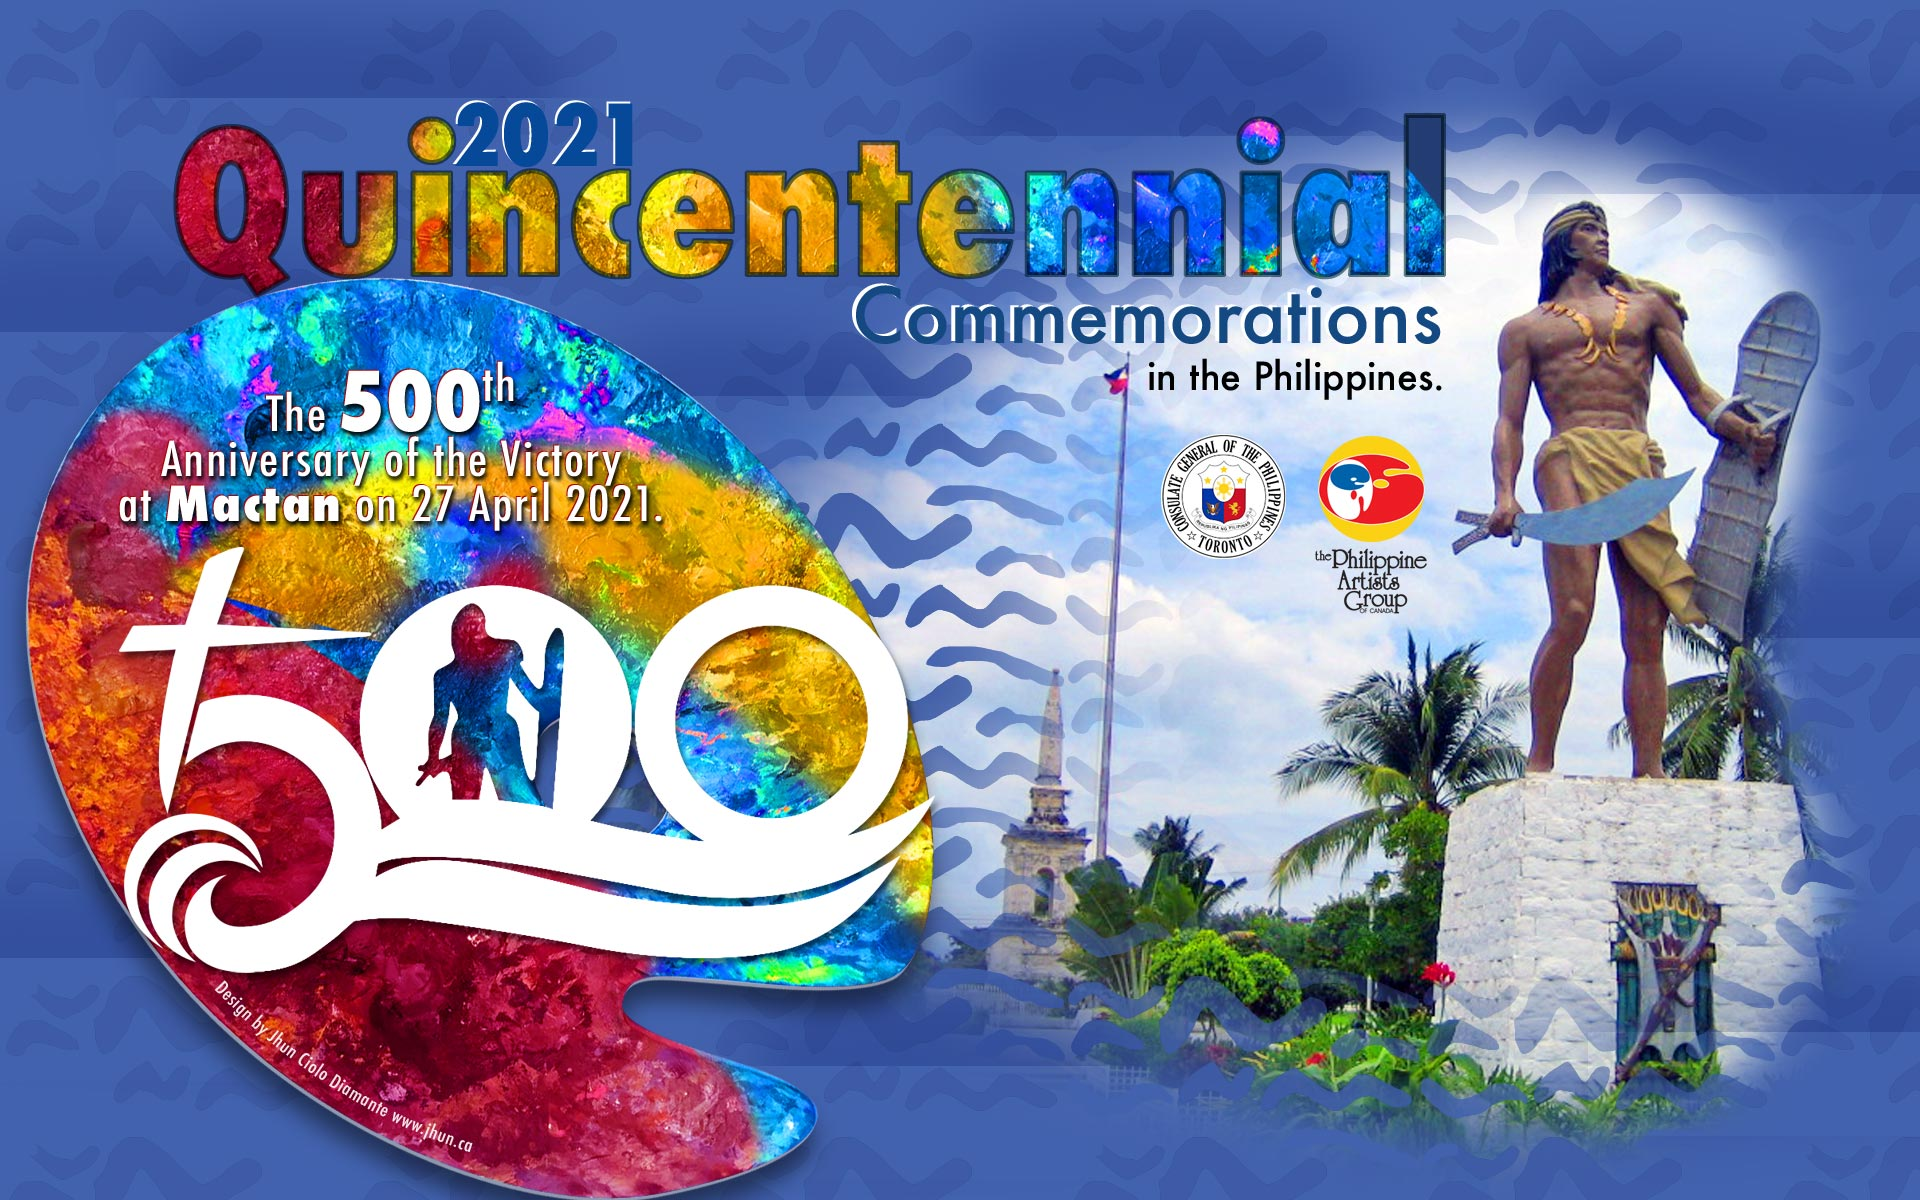 Quincentennial Commemorations in the Philippines